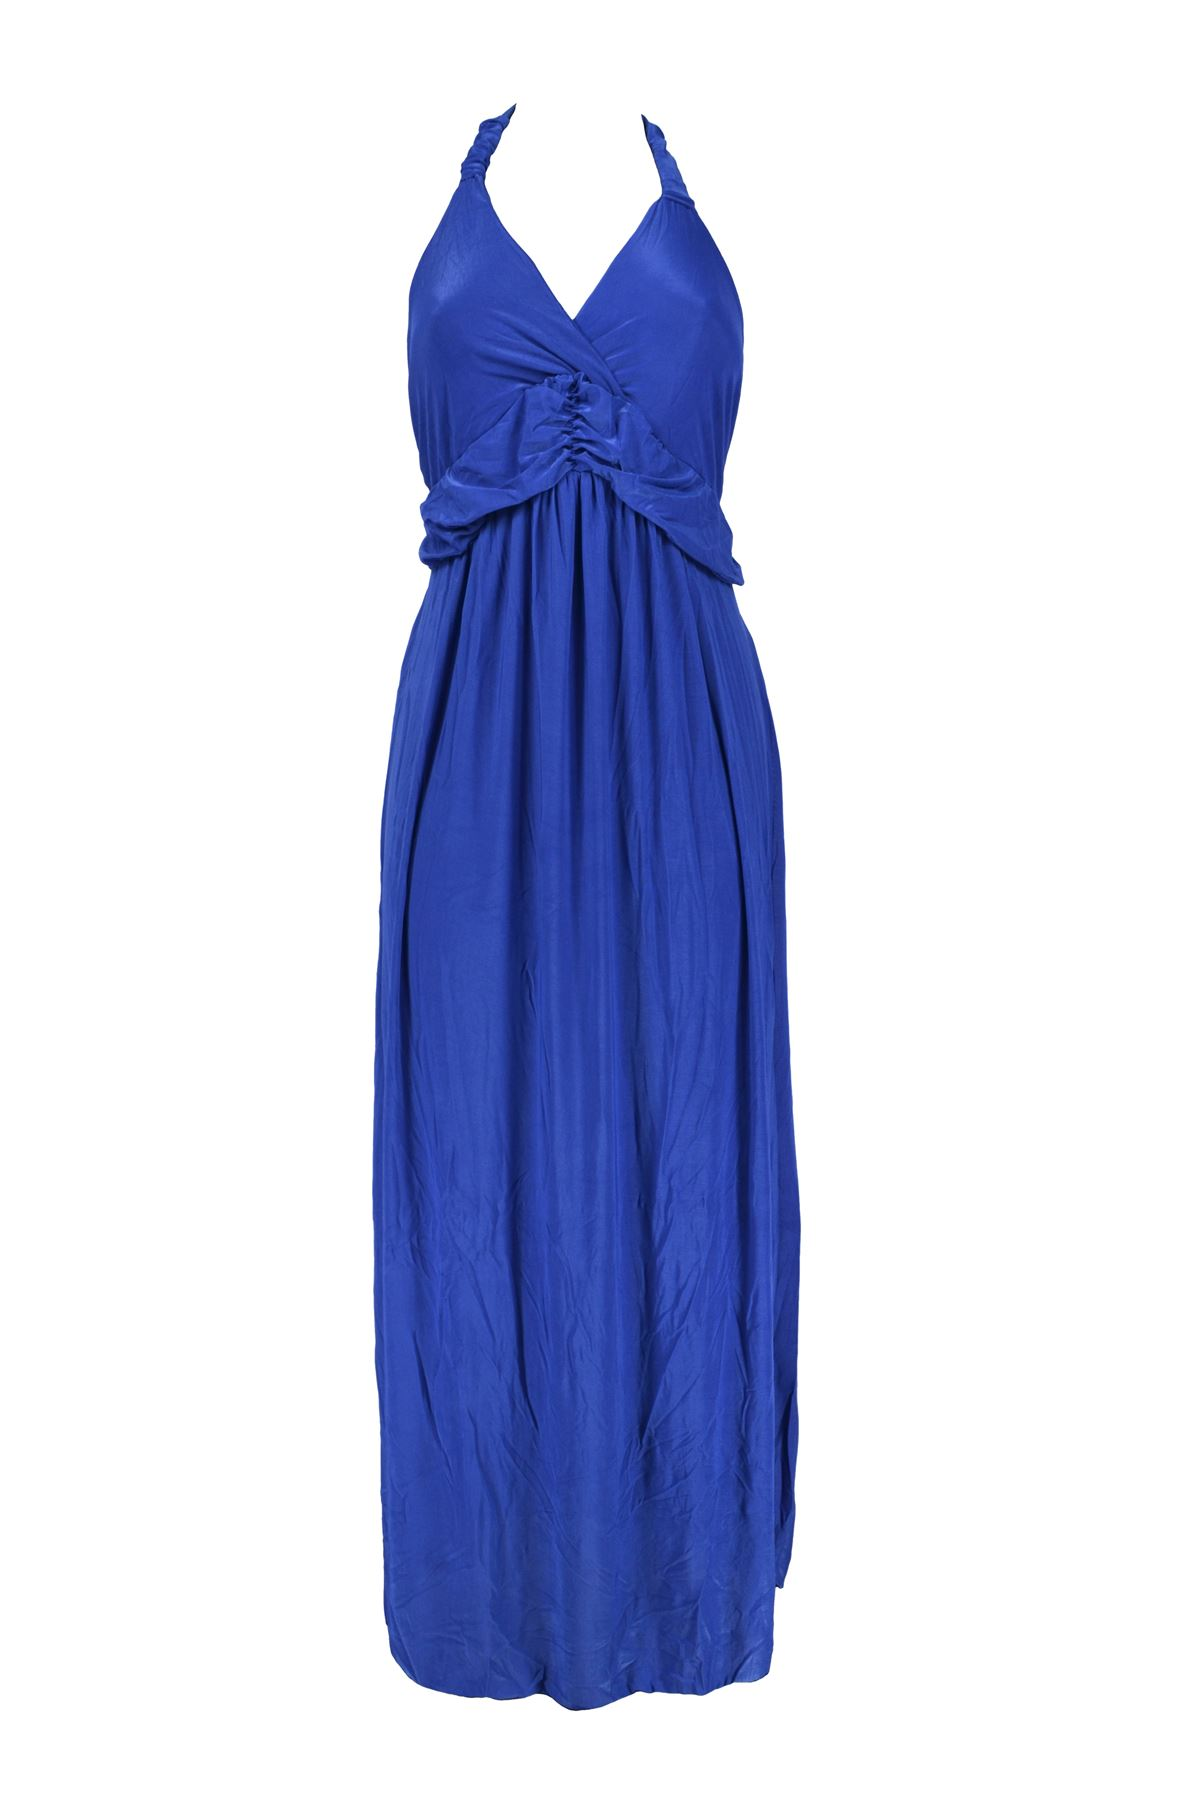 Belle Donne -Womens Clothing Long Maxi Halter Neck Solid Color Dress -Blue-L